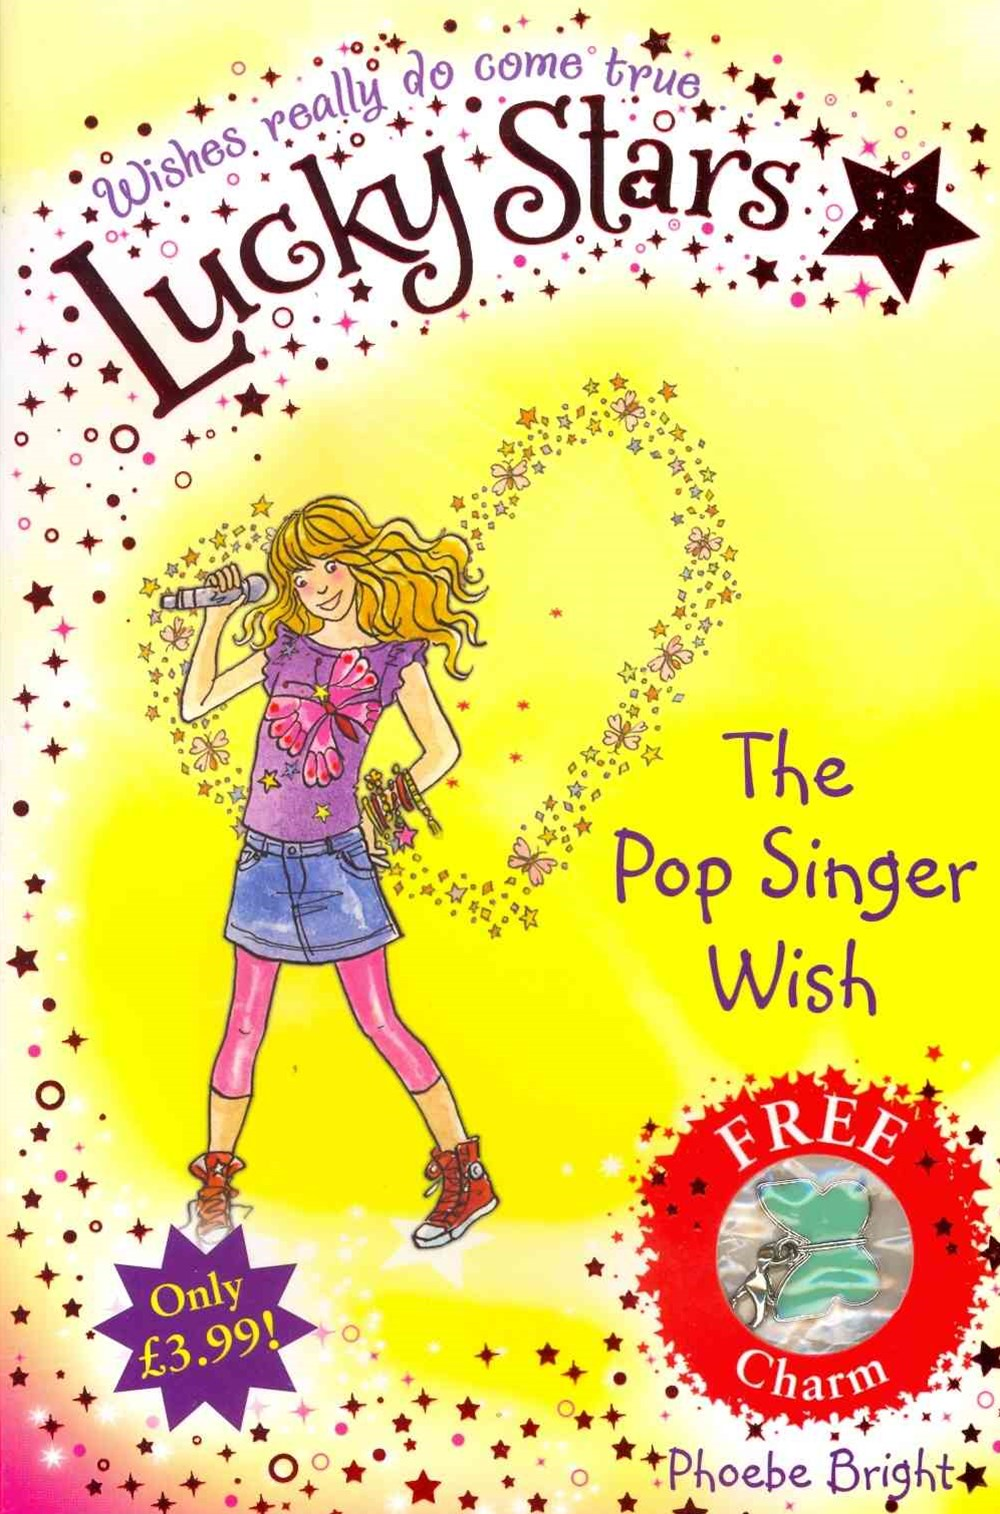 The Pop Singer Wish: Lucky Stars 3